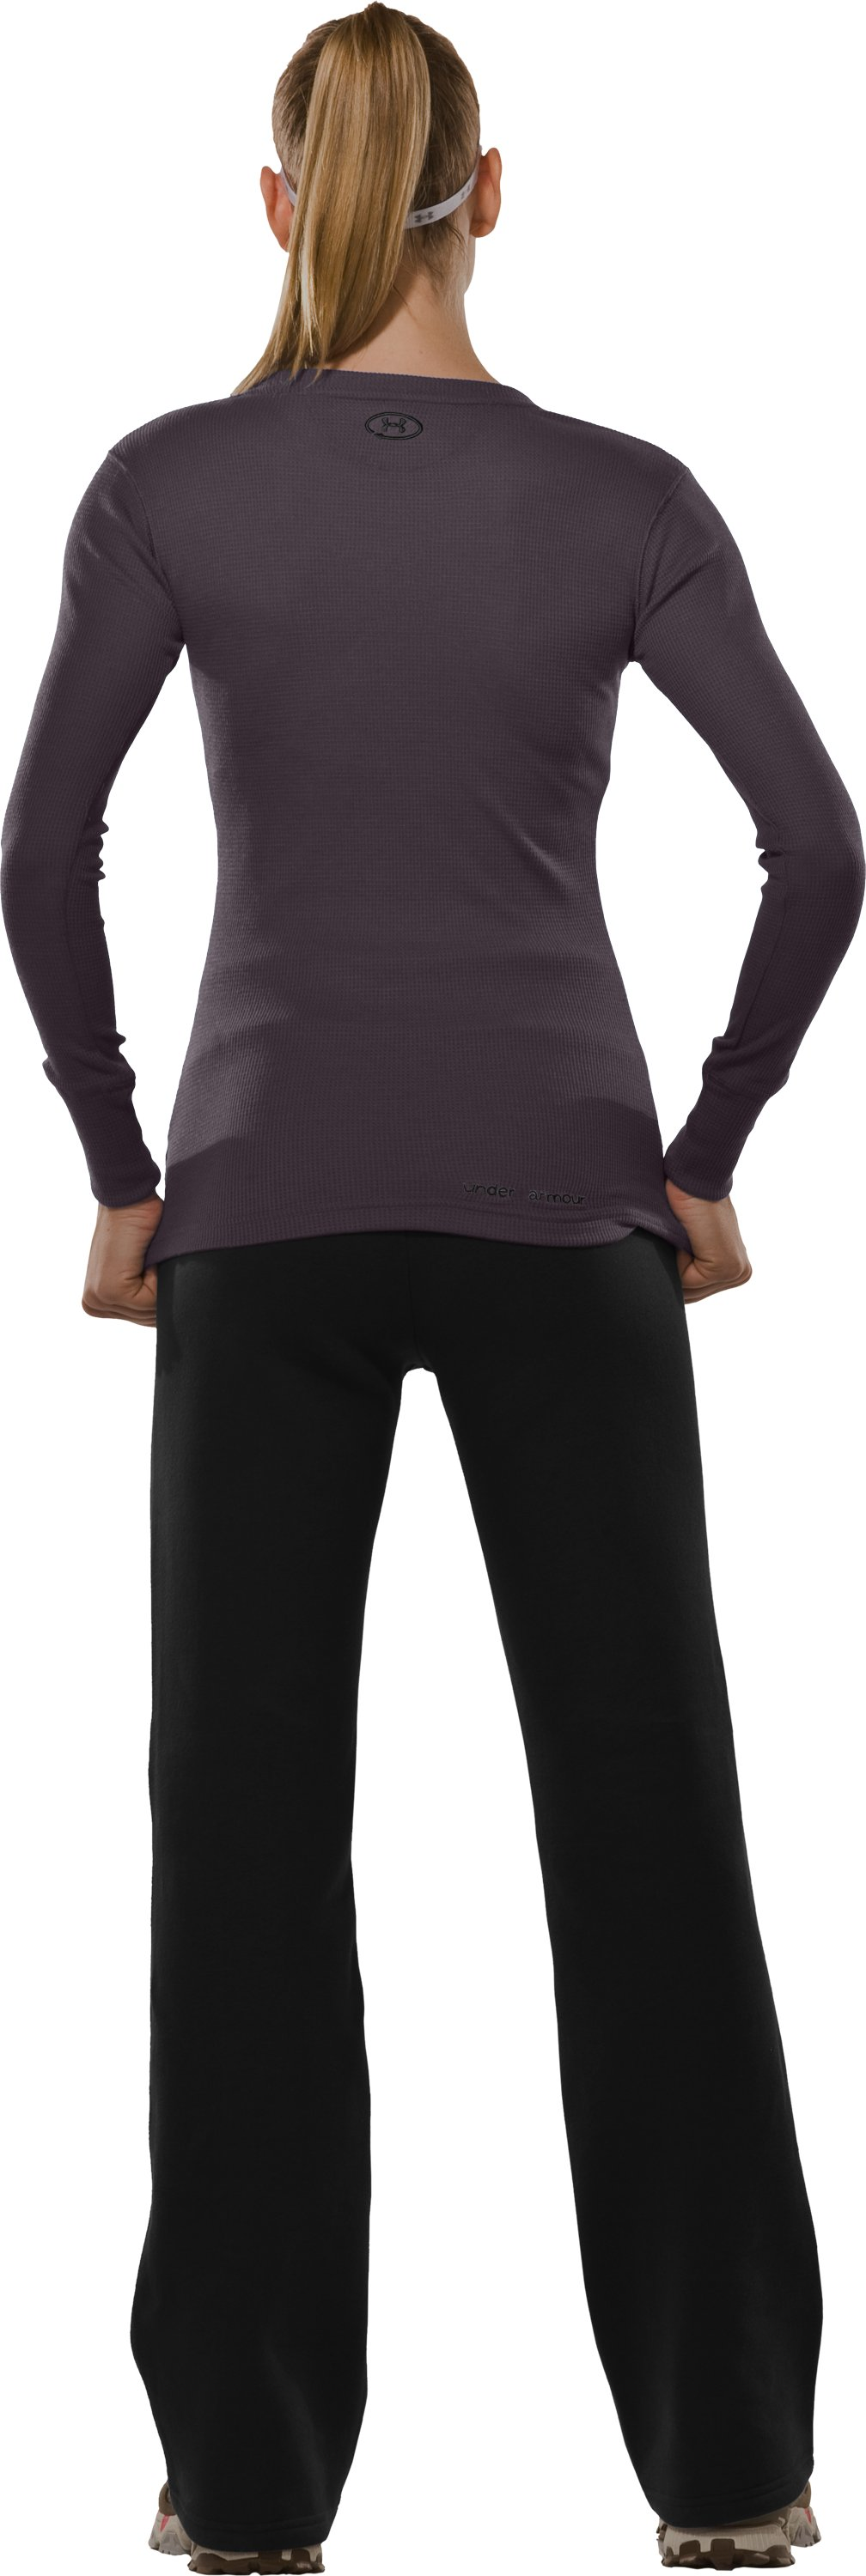 Women's Waffle Long Sleeve Crew Neck, Charcoal, Back